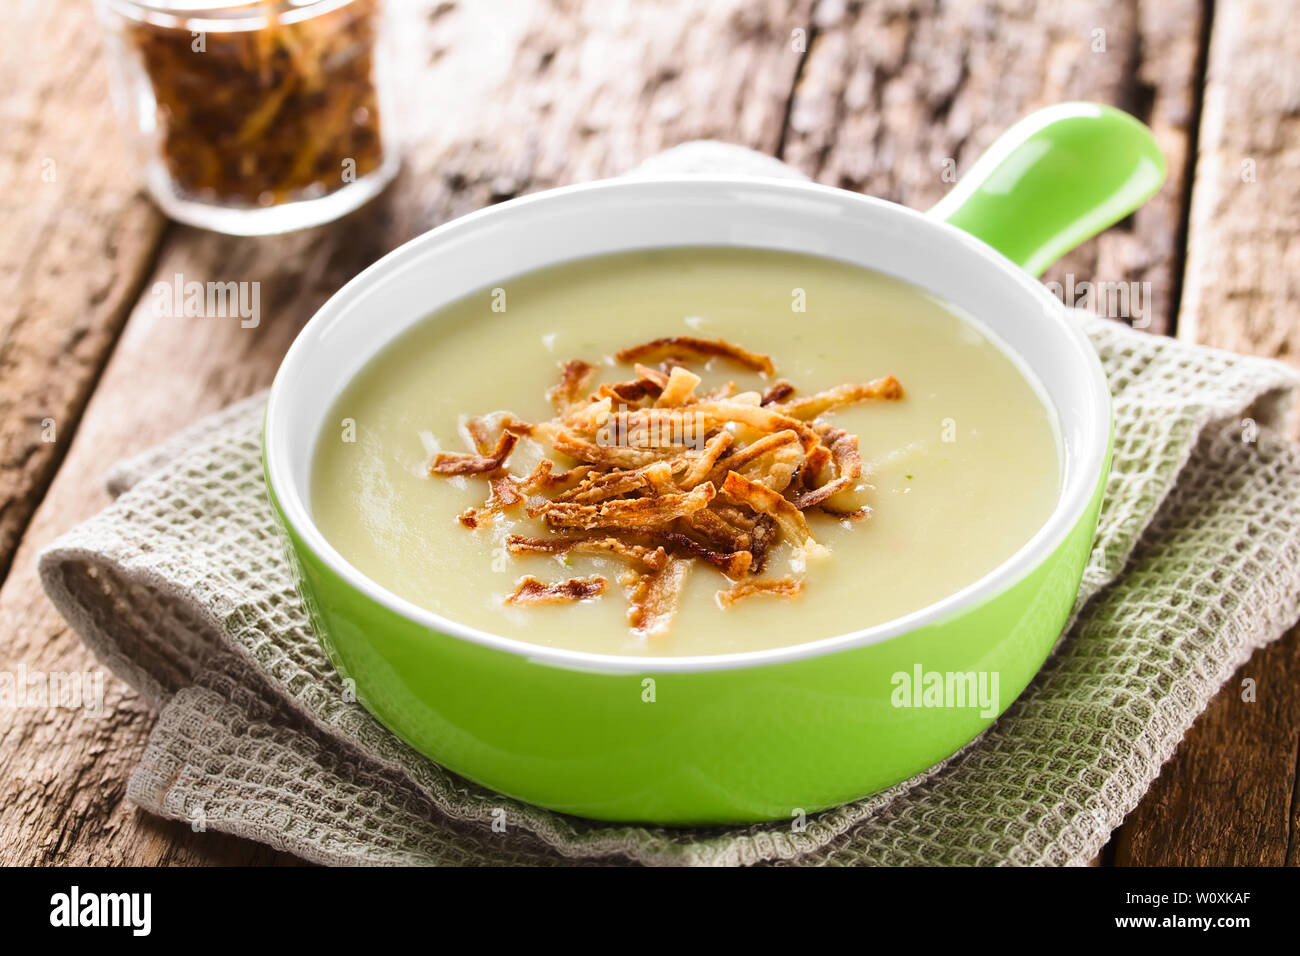 Fresh homemade cream of potato soup in green bowl garnished with crispy onion strings (Selective Focus, Focus one third into the bowl) - Stock Image